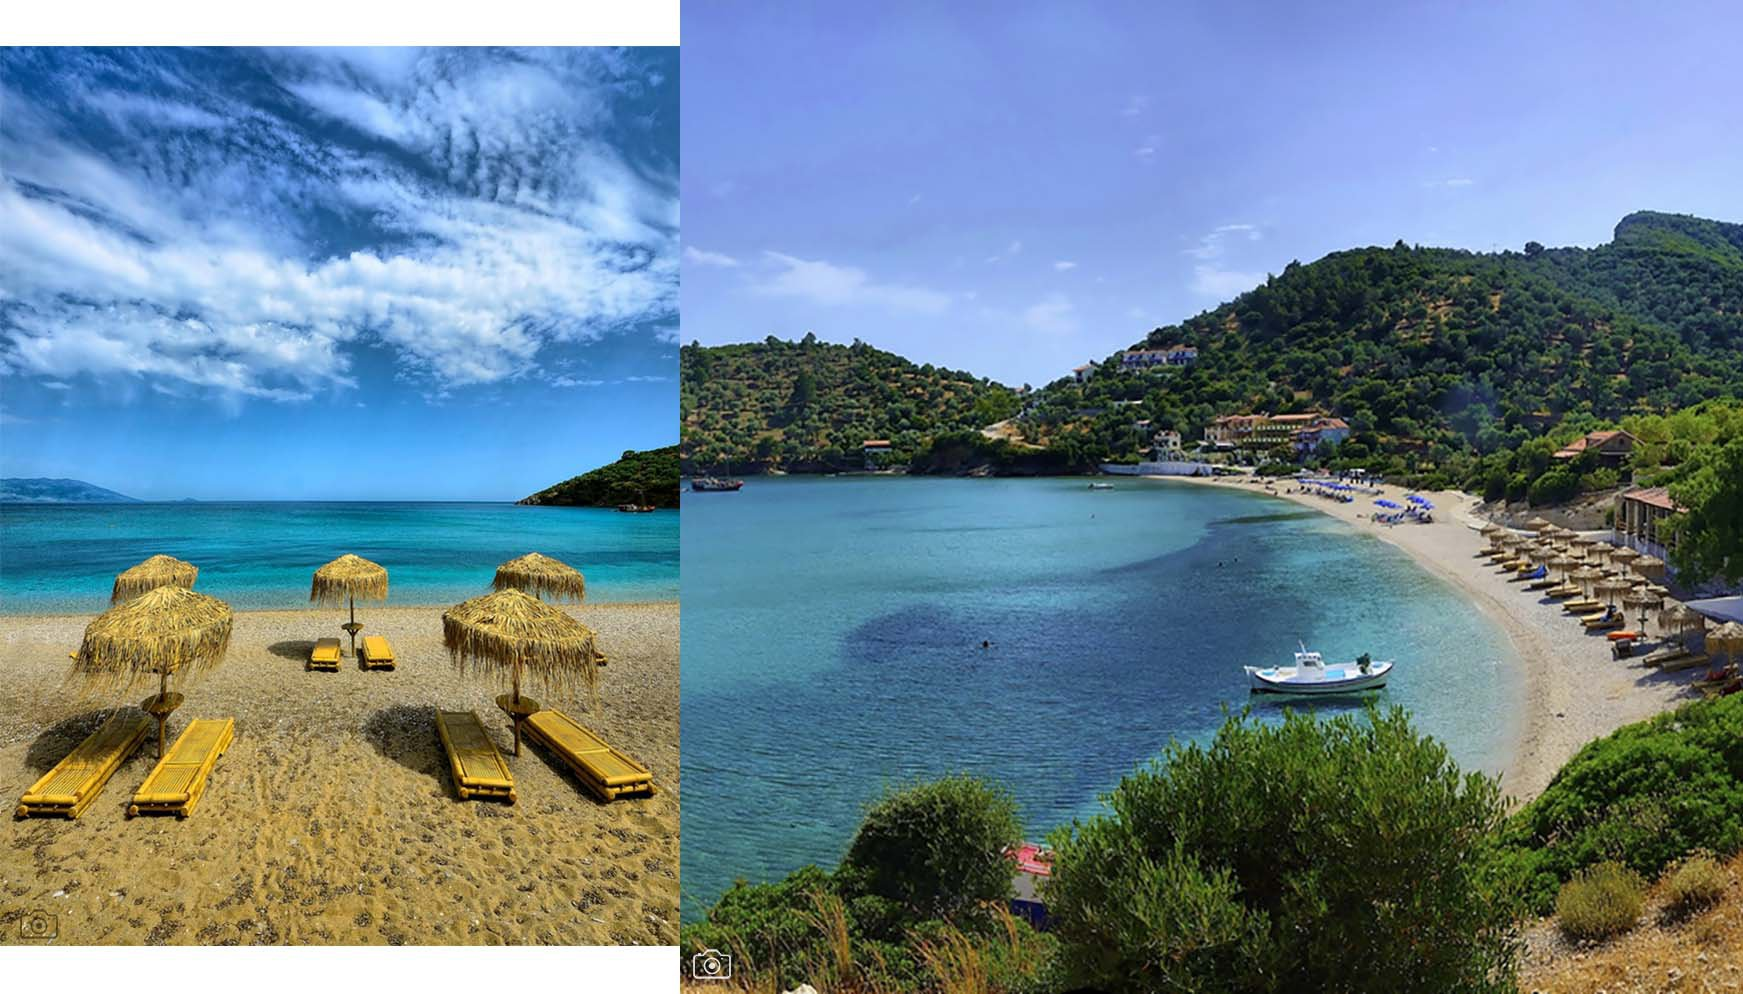 Enjoy Samos and its countryside through revitalising hikes